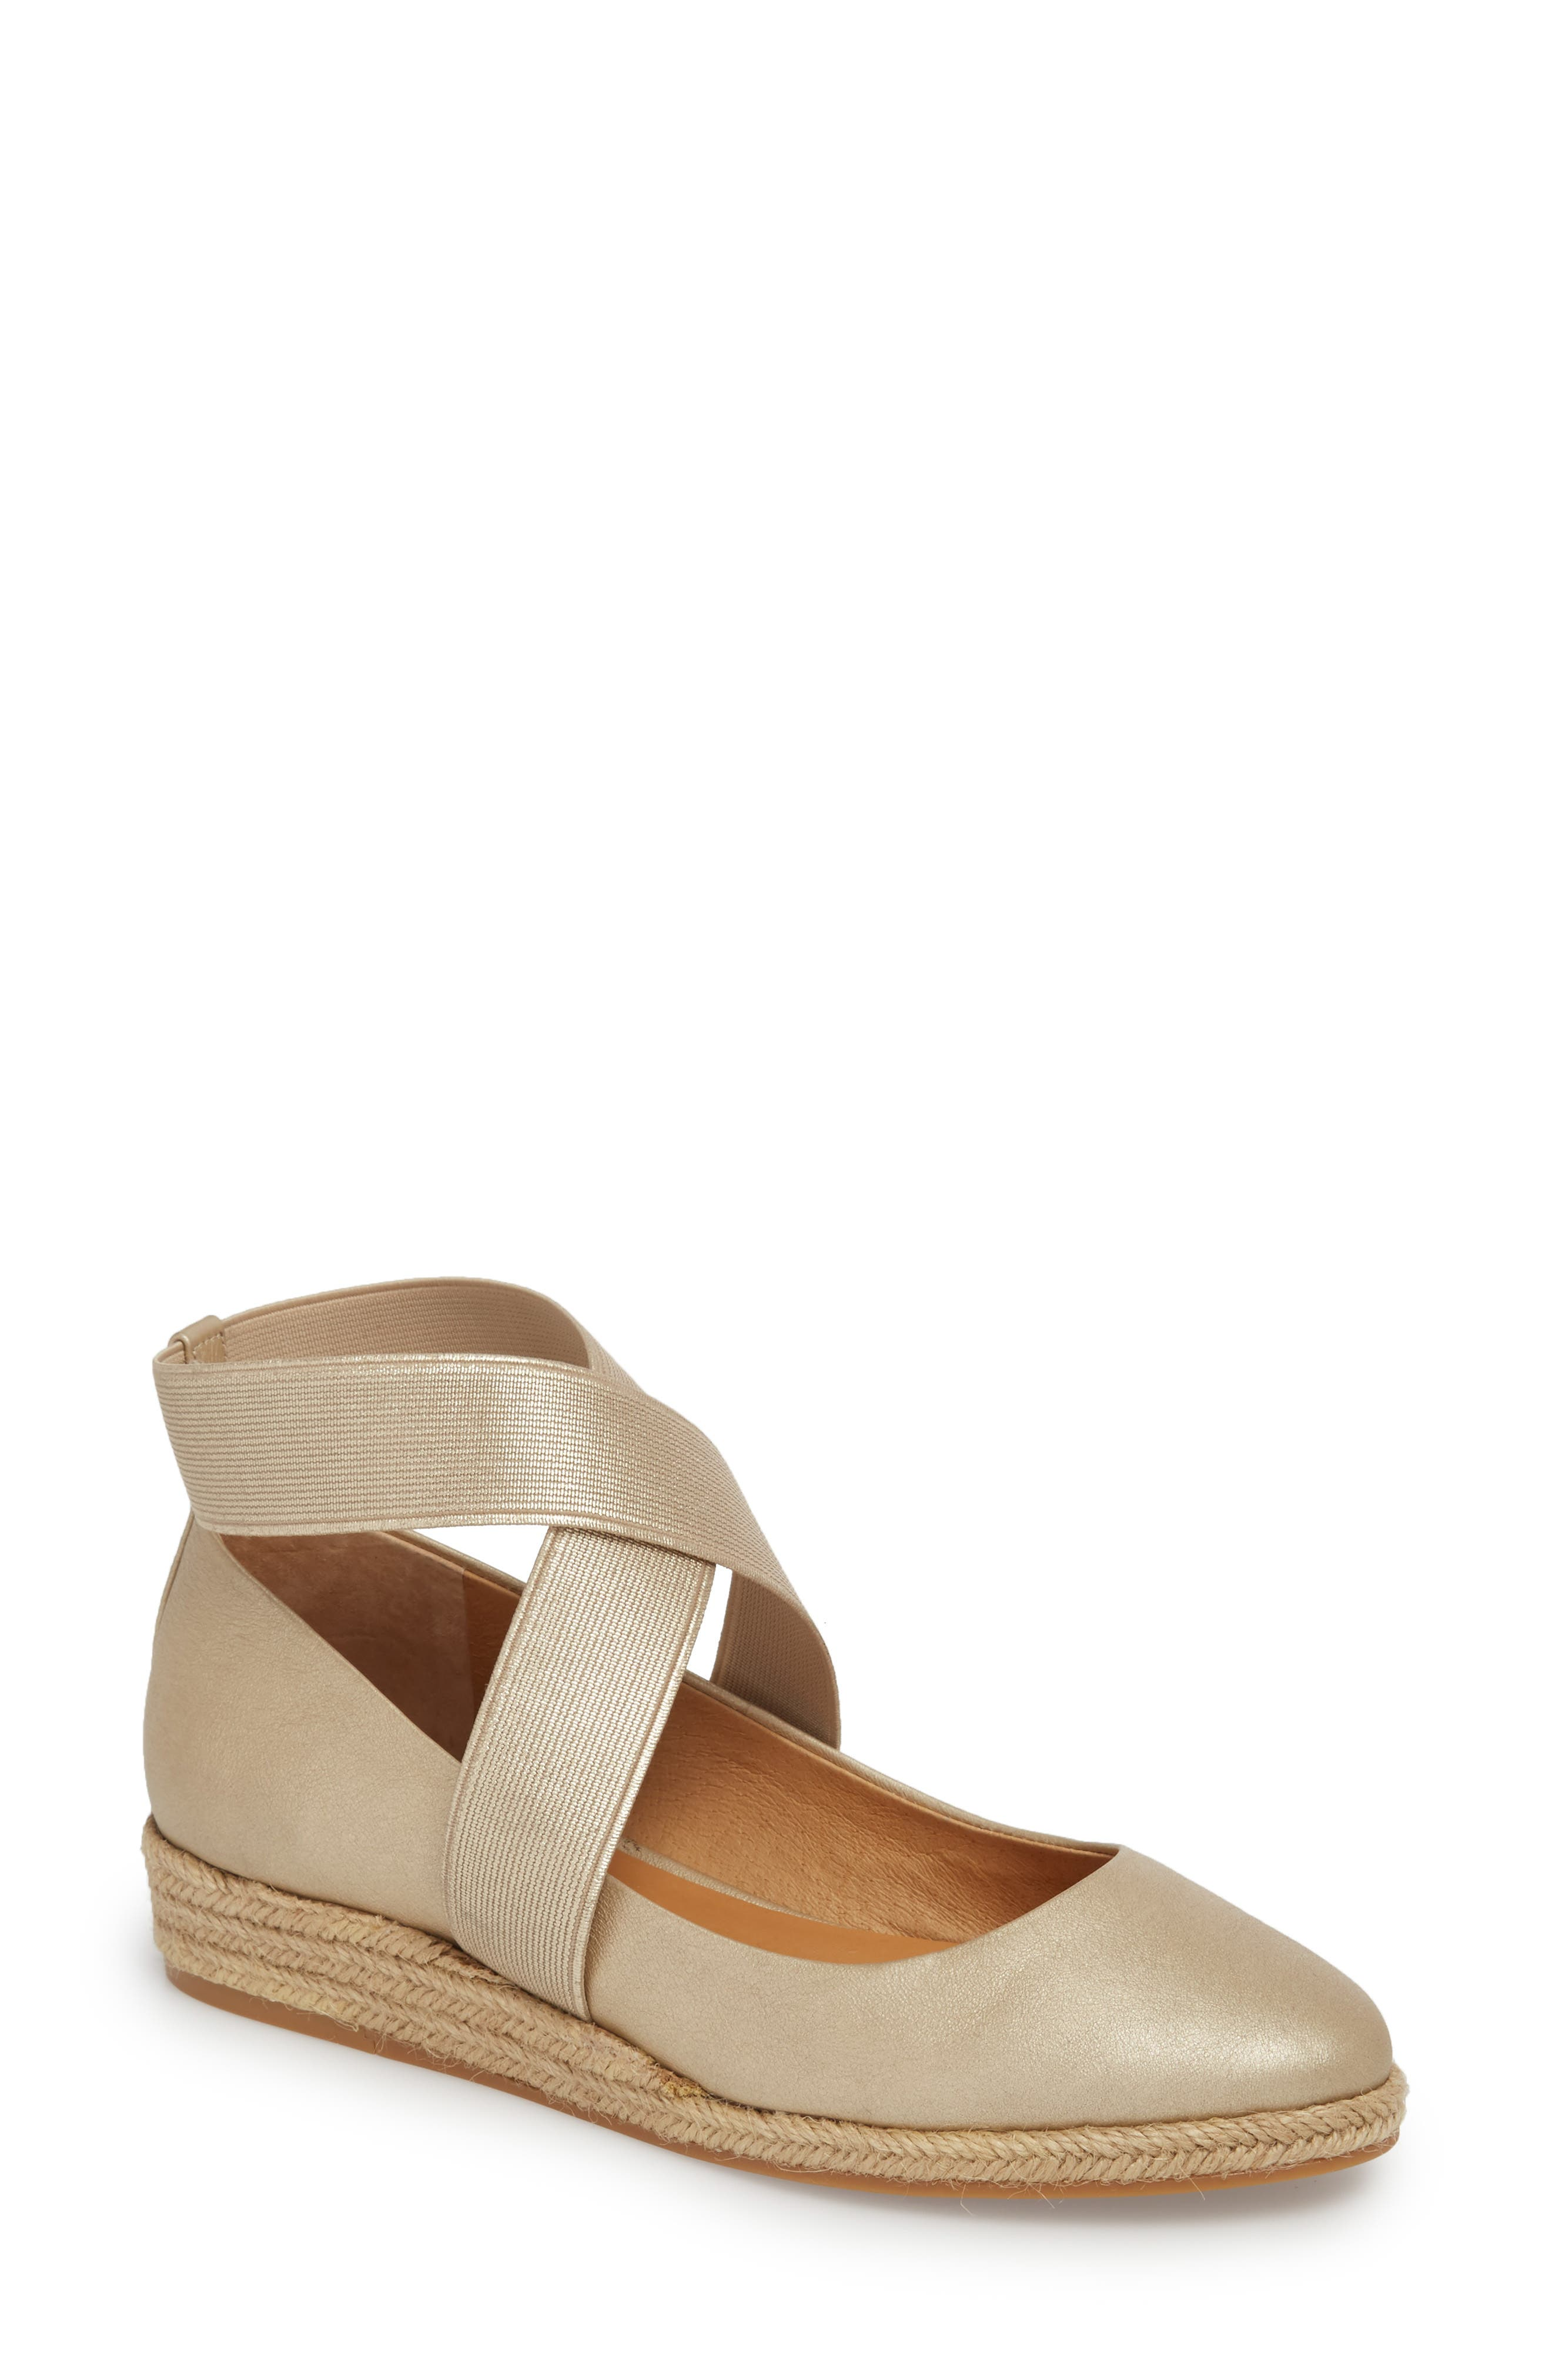 Bellah Espadrille Wedge,                             Main thumbnail 1, color,                             Soft Gold Leather